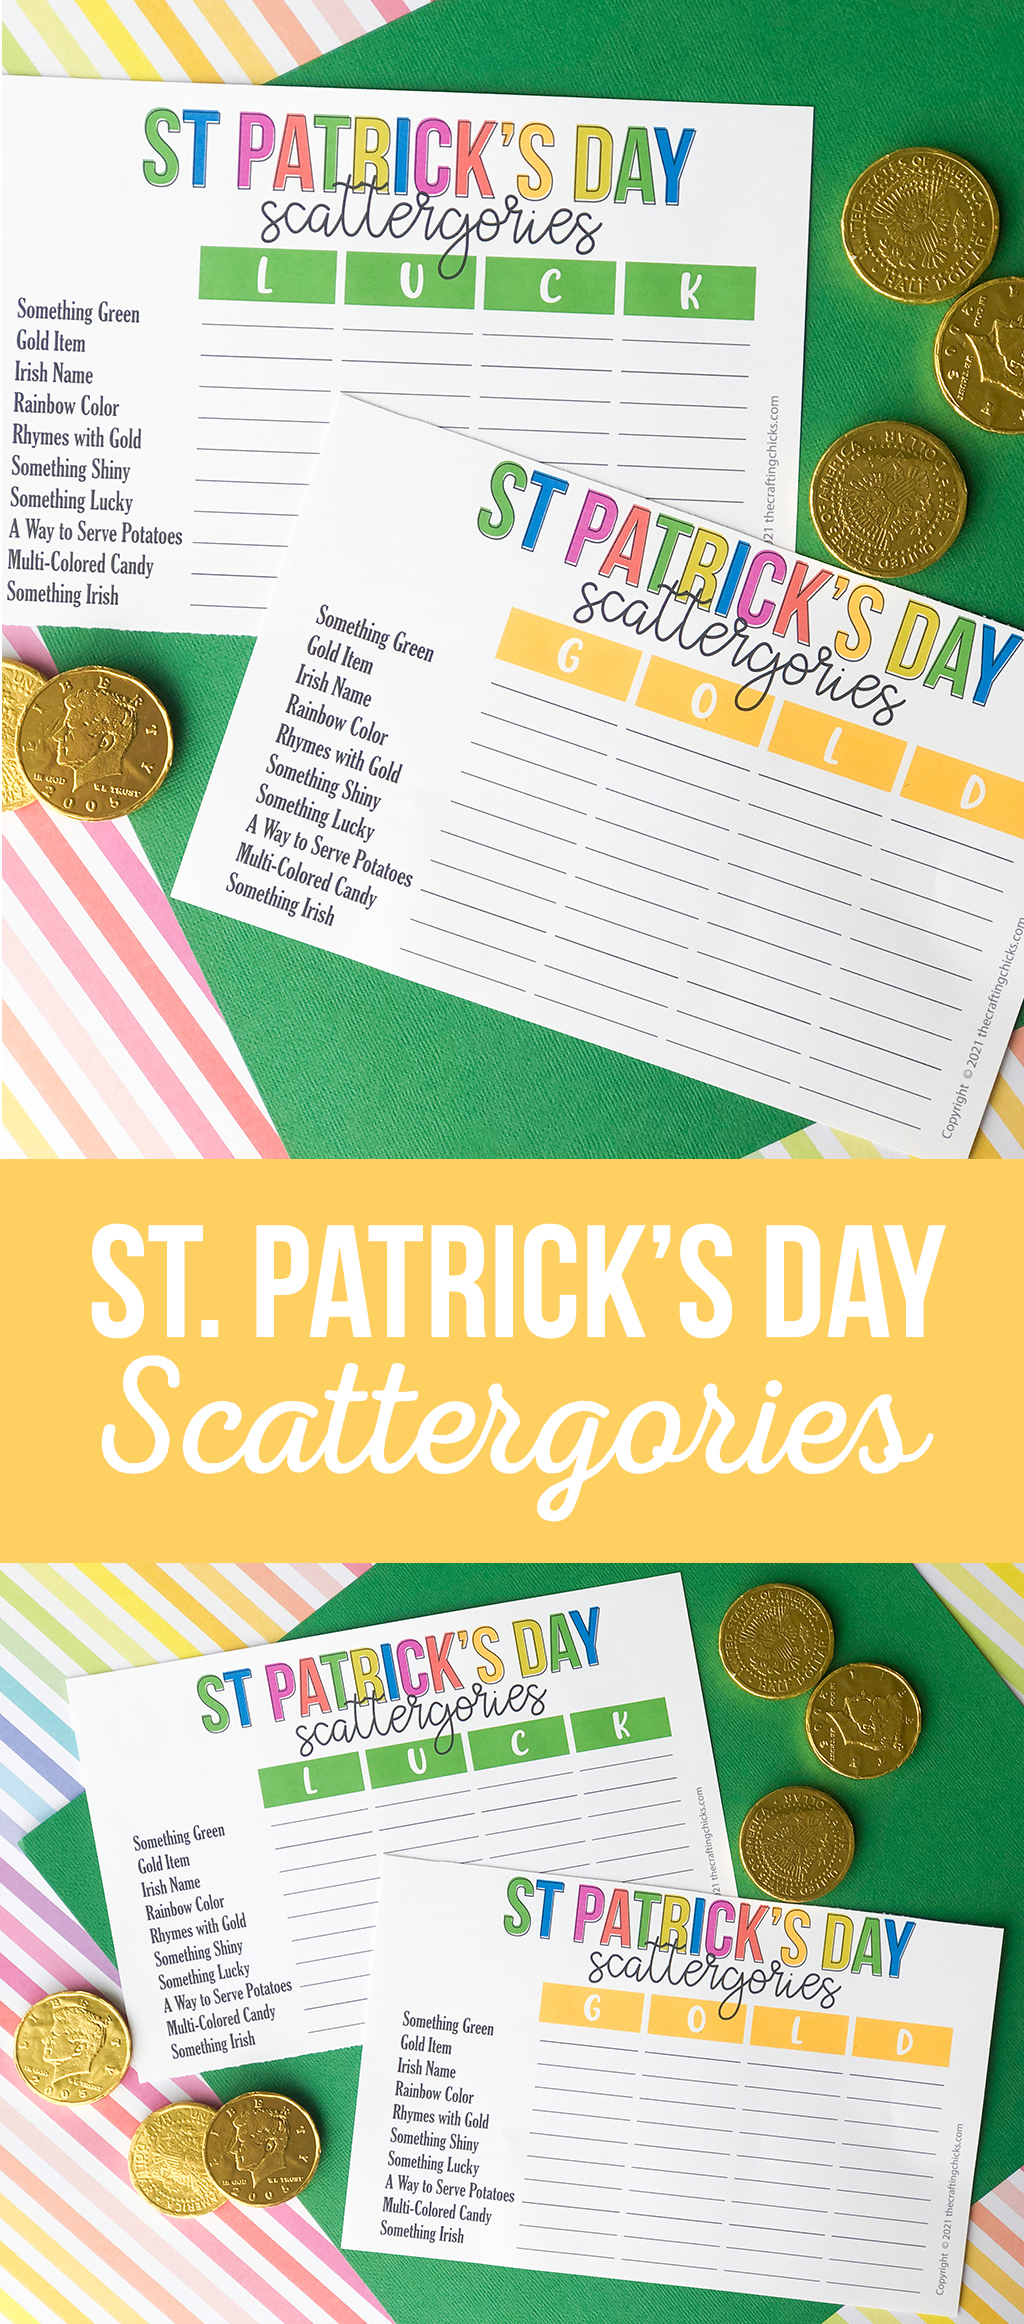 St. Patrick's Day Scattergories Printable Game on a green and rainbow background